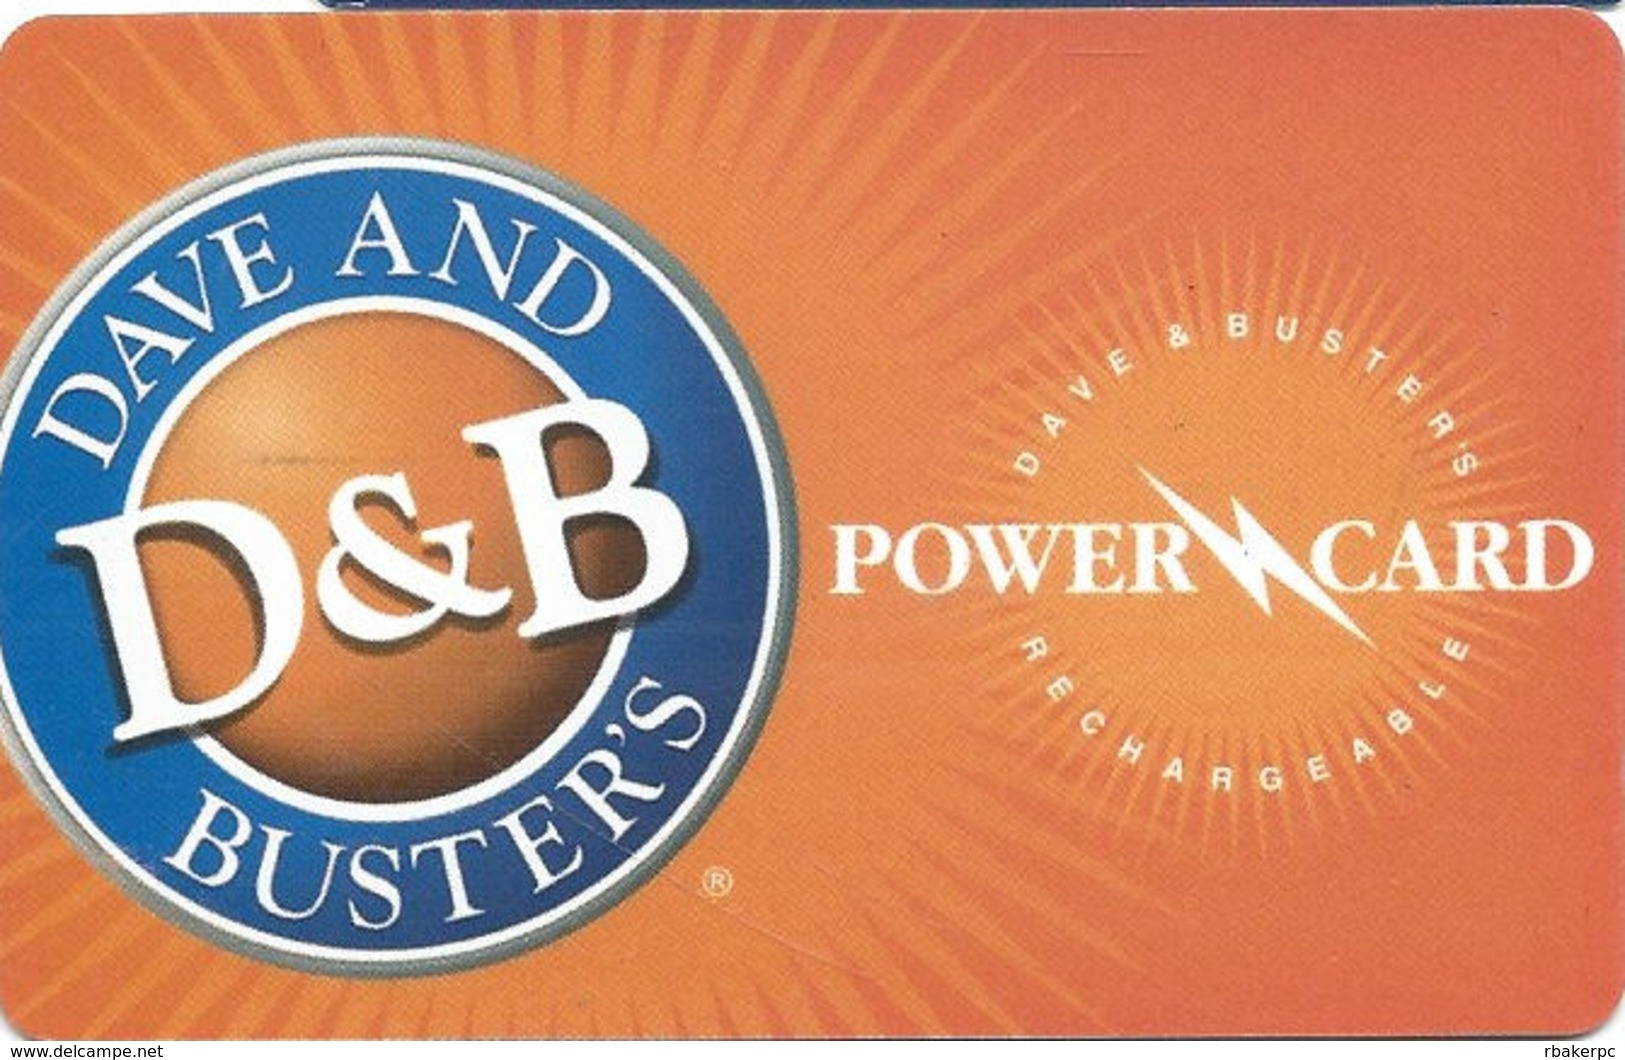 Dave & Buster's / D&B Rechargeable Power Card / Gift Card / 2011 - Gift Cards